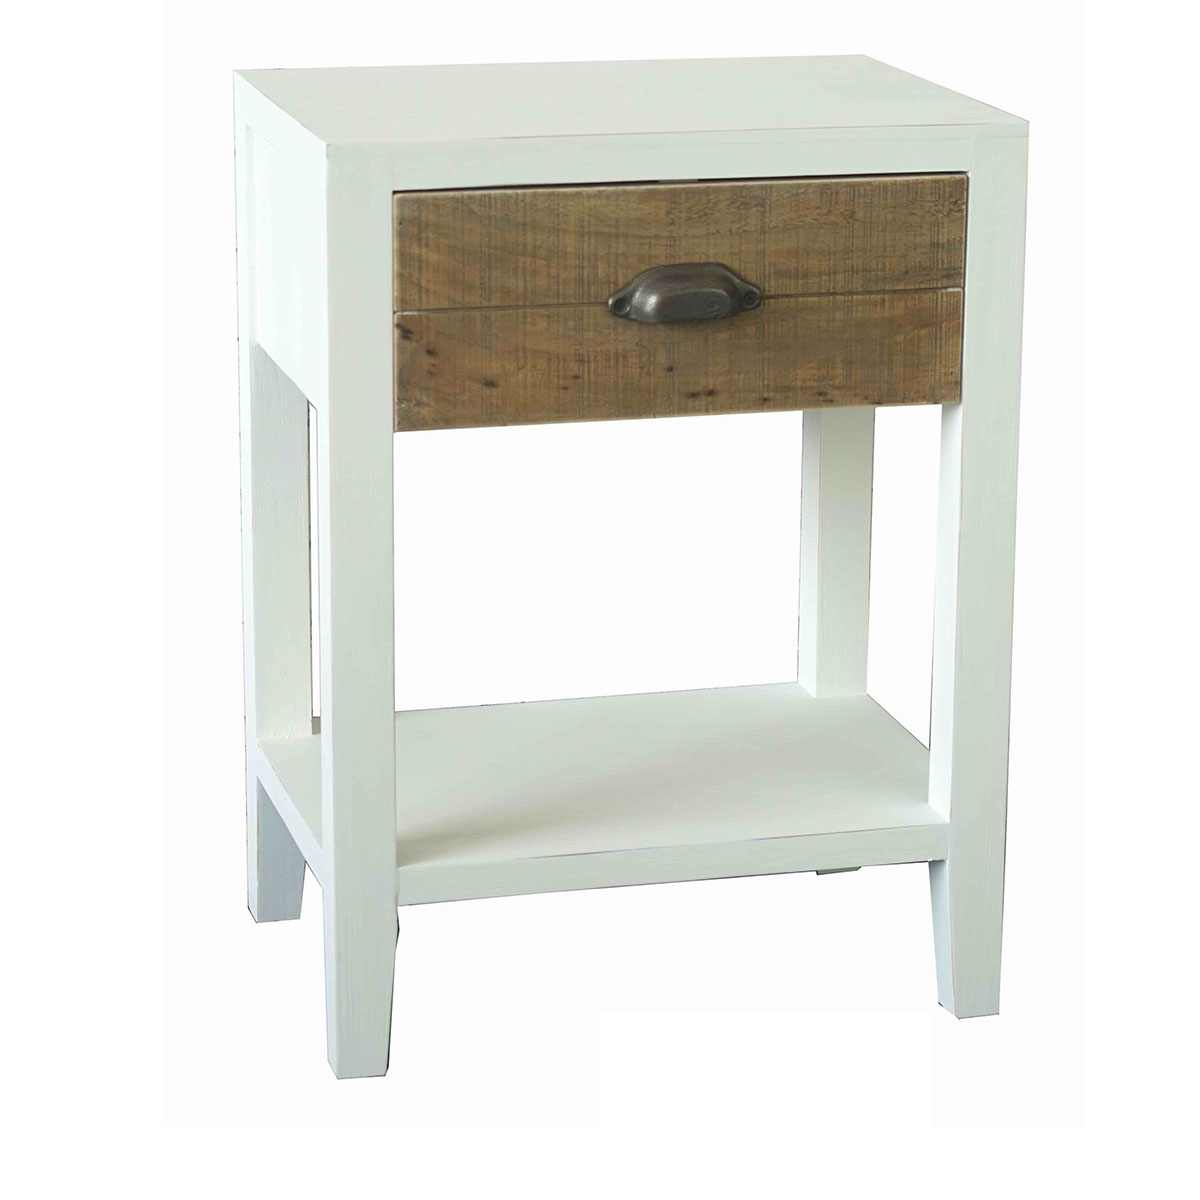 Sophisticated White Cabinet by Urban Port brown foldable storage ottoman by urban port